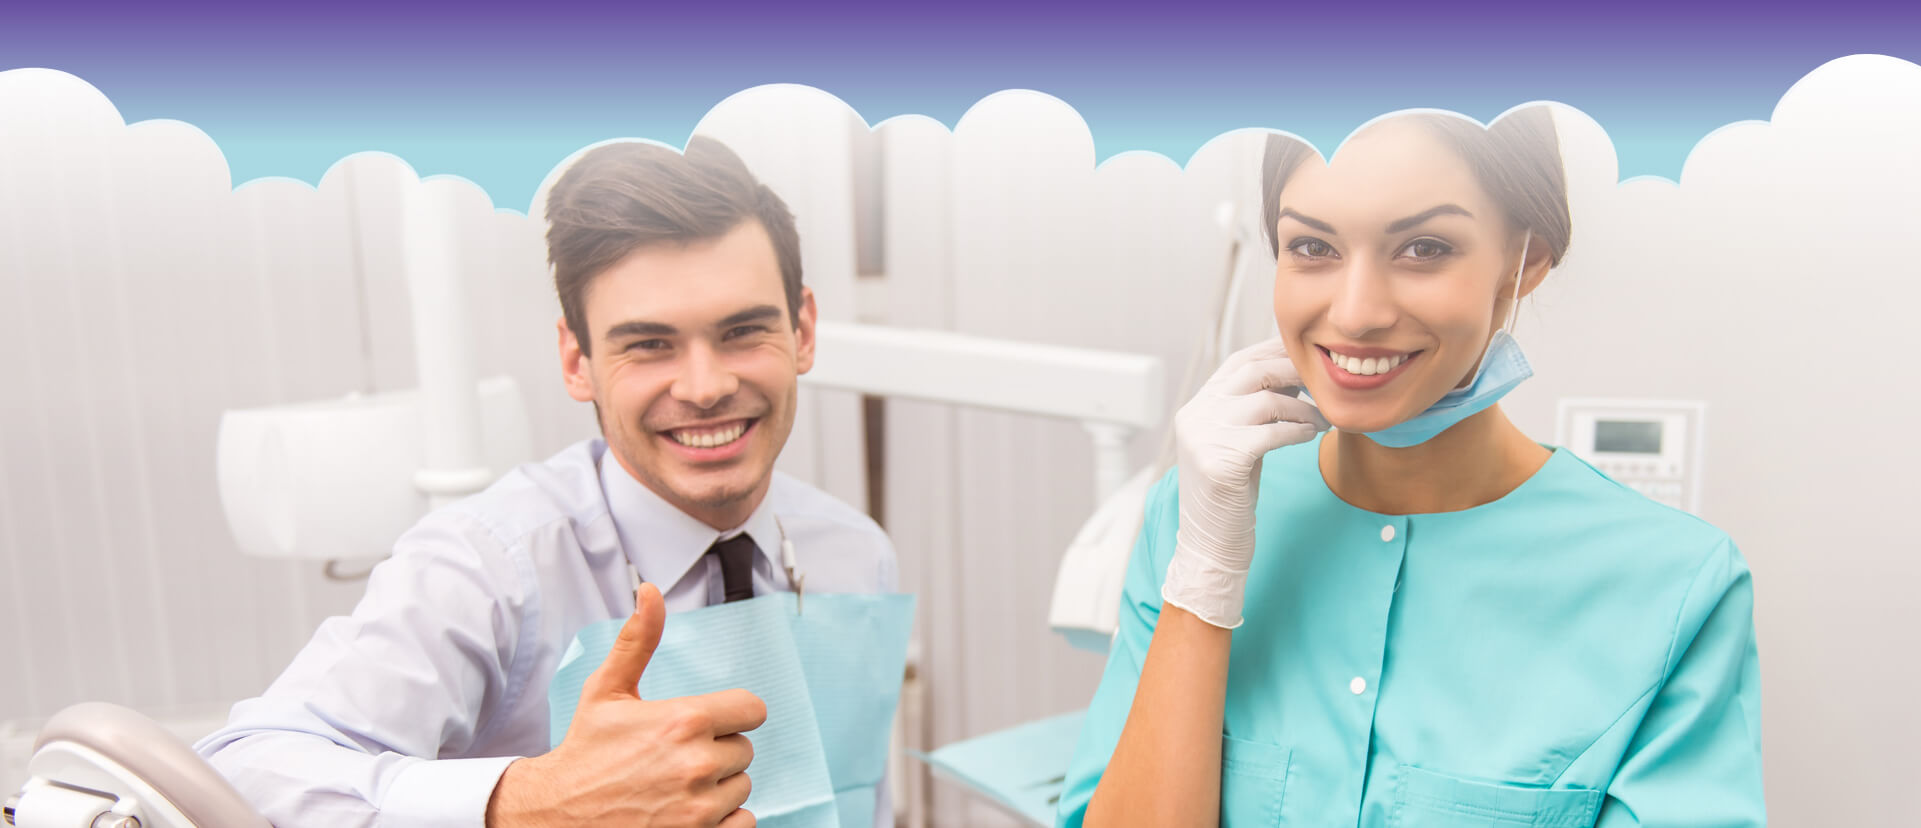 Dental assistant and patient smiling at the camera